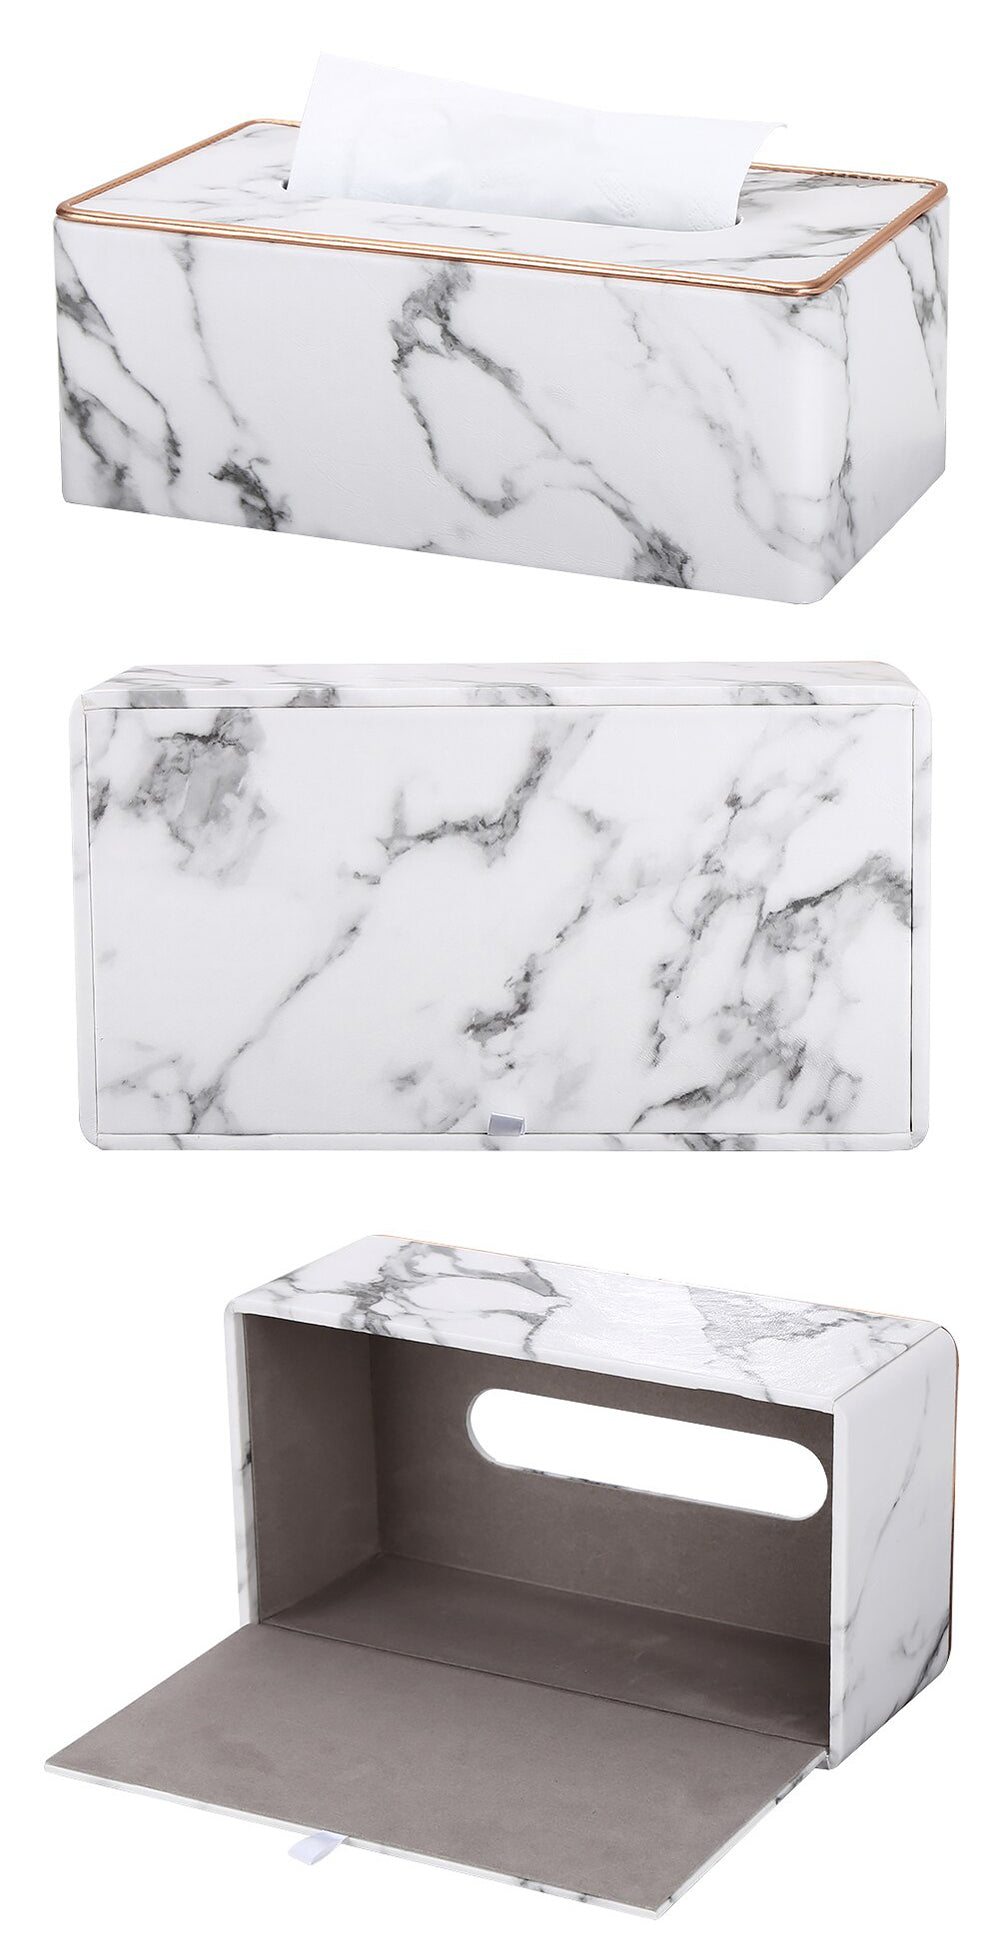 Marble Grain Desktop Tissue Box Nordic Style Washroom Towel Dispenser Tissue Box For Office Home Kitchen Living Room PU Leather With Golden Metal Rim